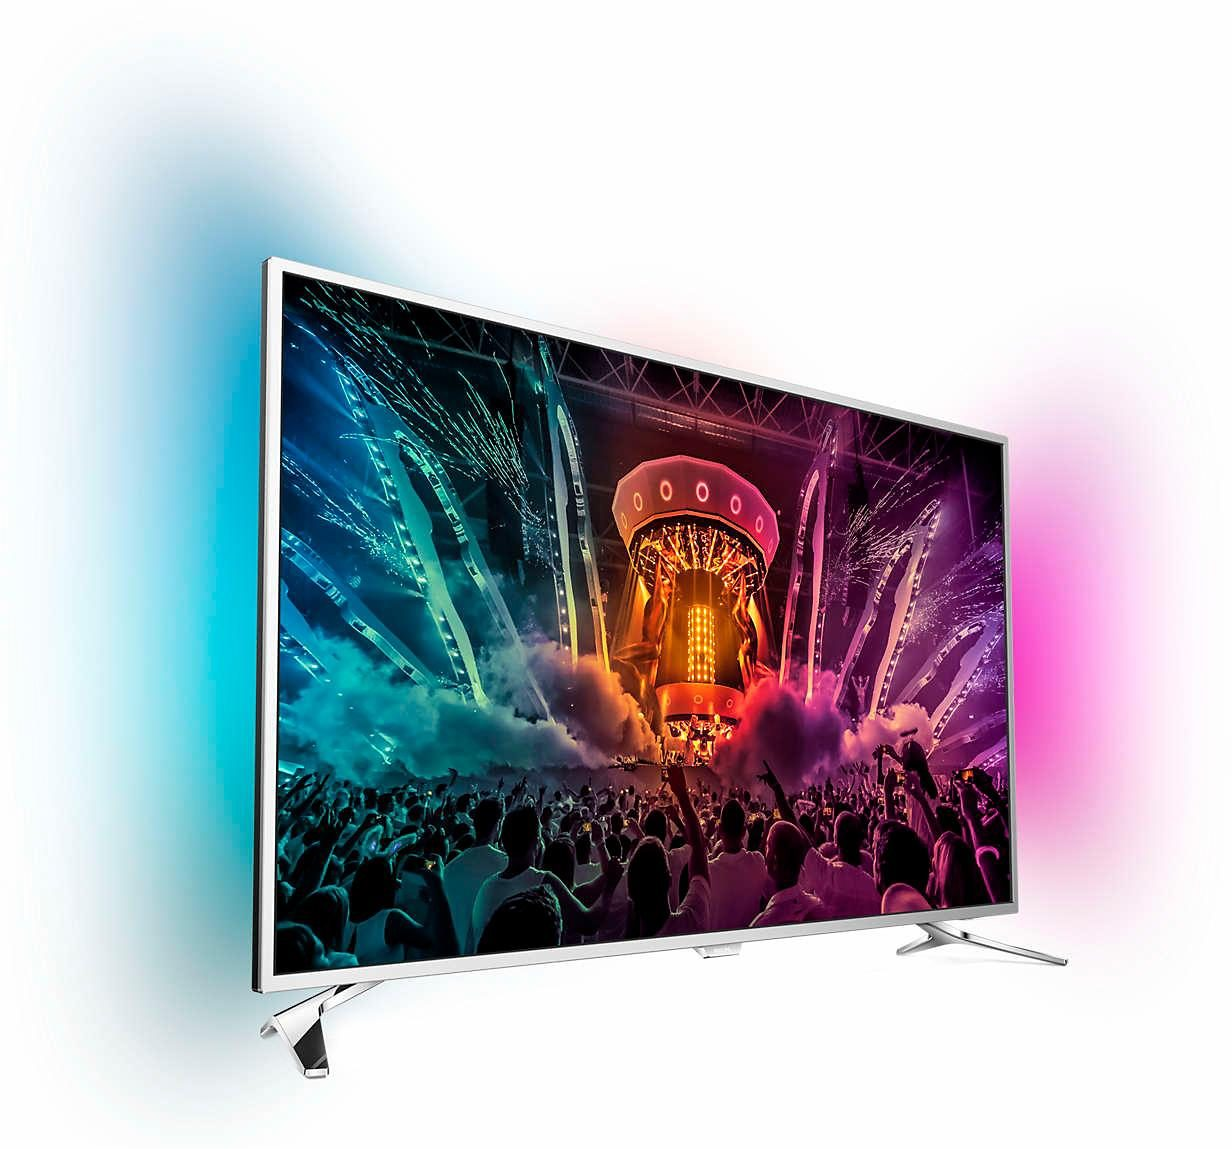 Philips 55PUS6501, LED Fernseher, 139 cm (55 Zoll), 2160p (4K Ultra HD) Ambilight, Smart-TV